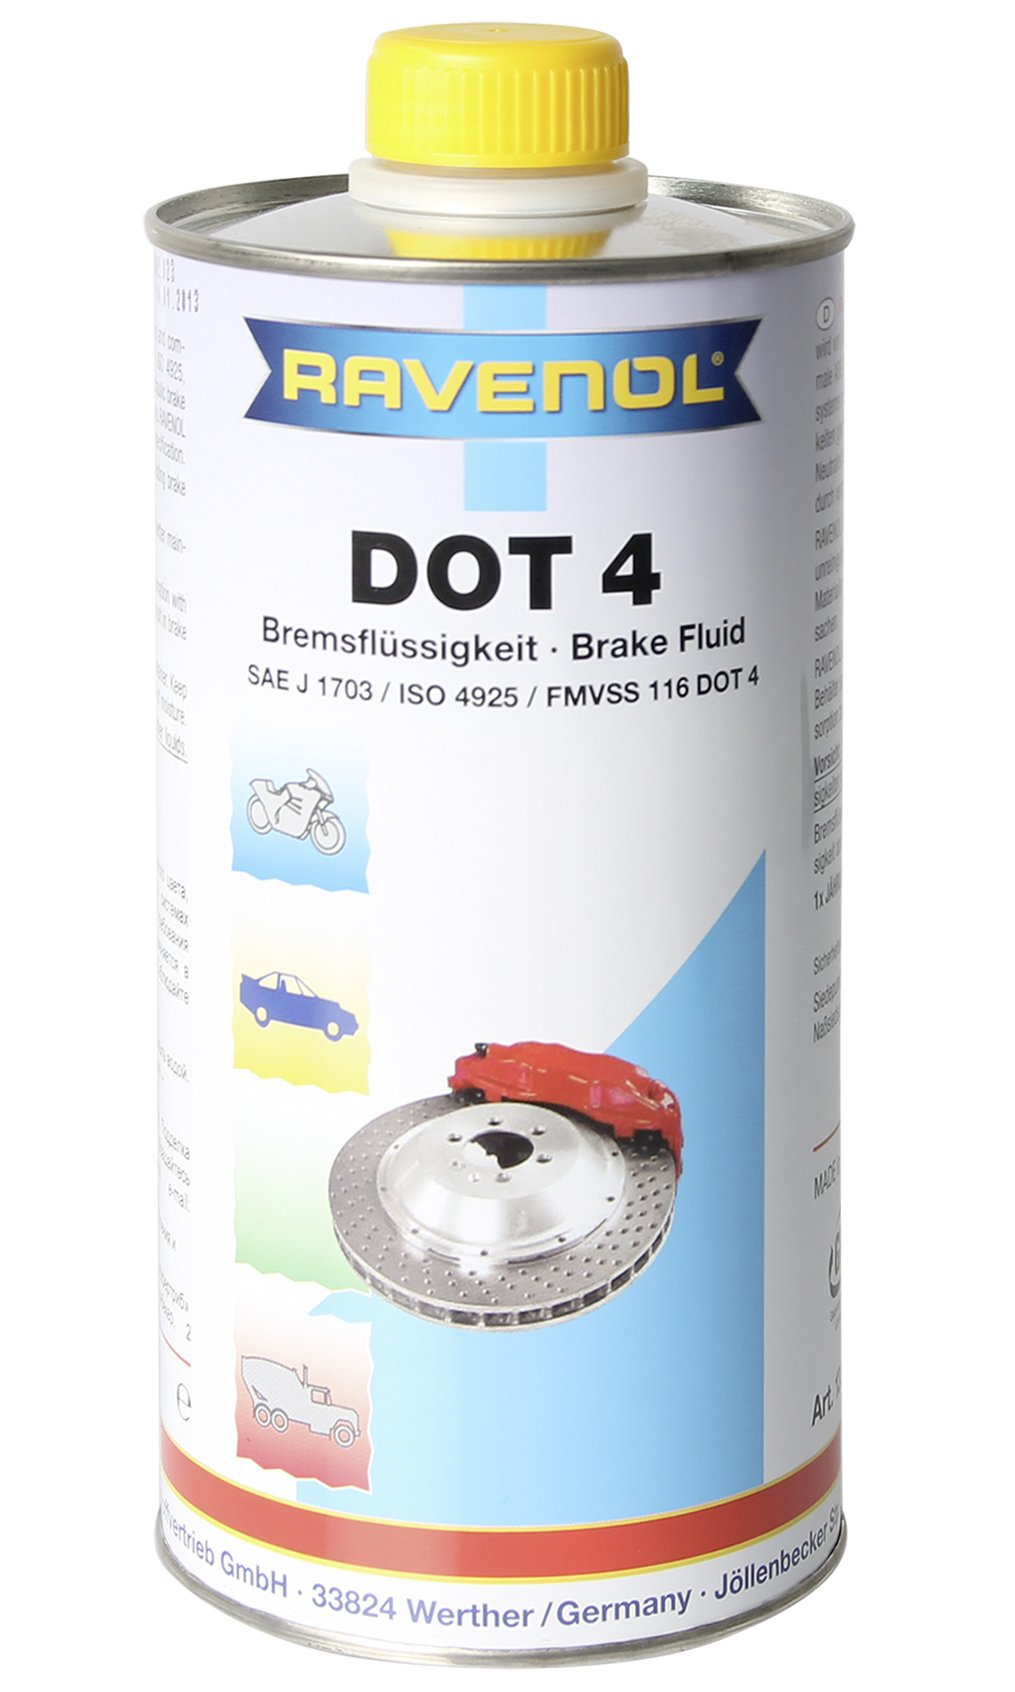 Ravenol J3A1012 Brake Fluid - DOT 4 SAE J1704 (1 Liter) by Ravenol